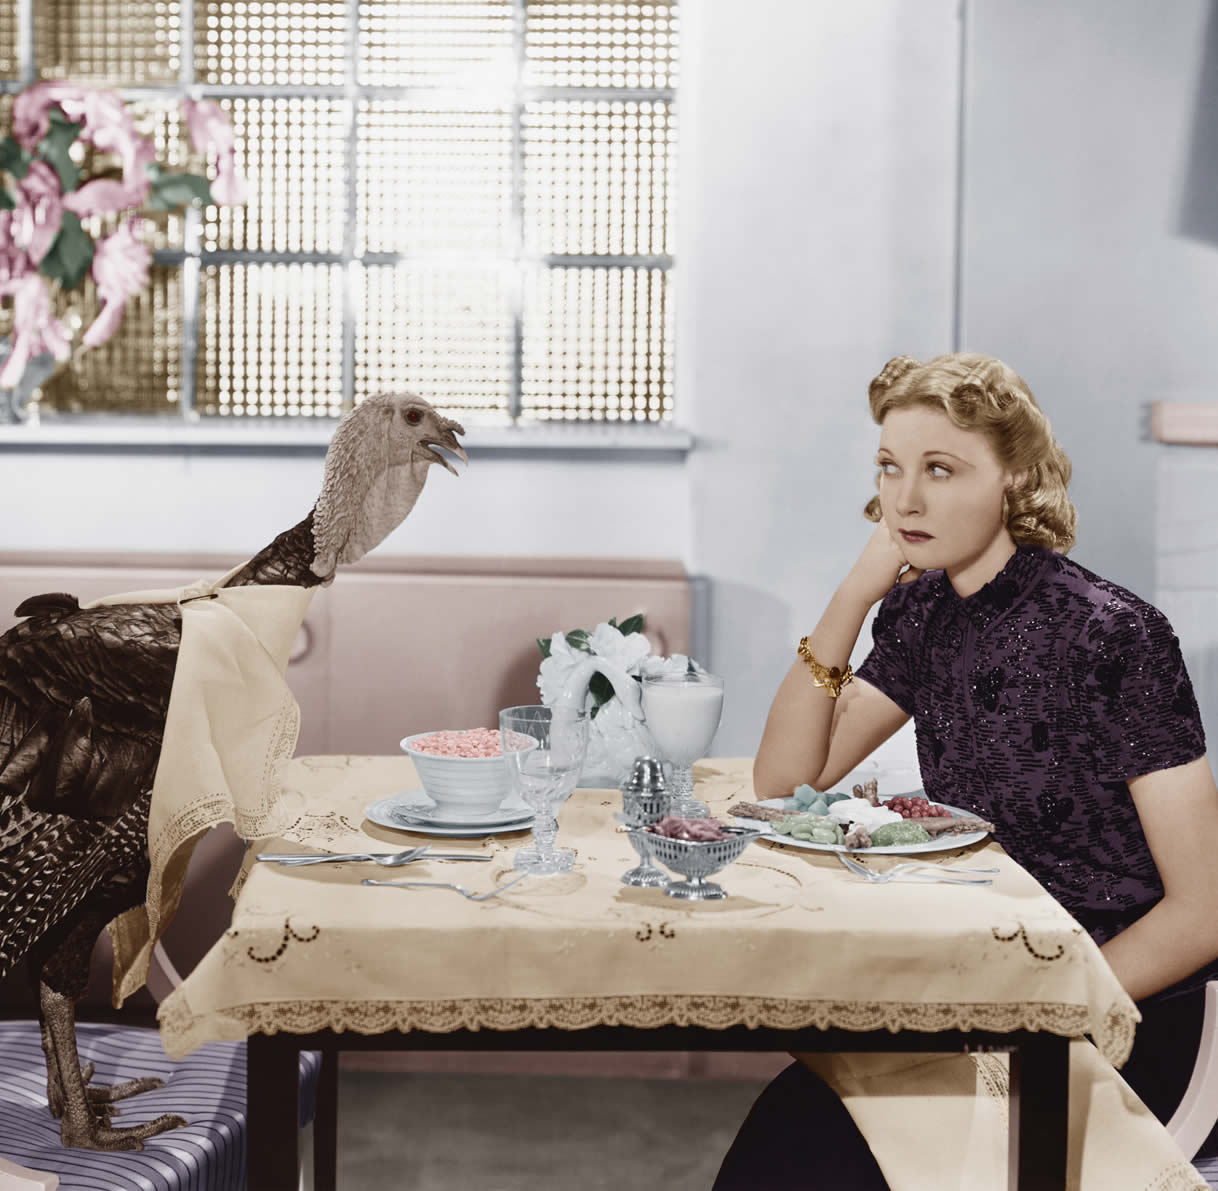 Vintage photo of woman sitting across from a turkey at a restaurant.